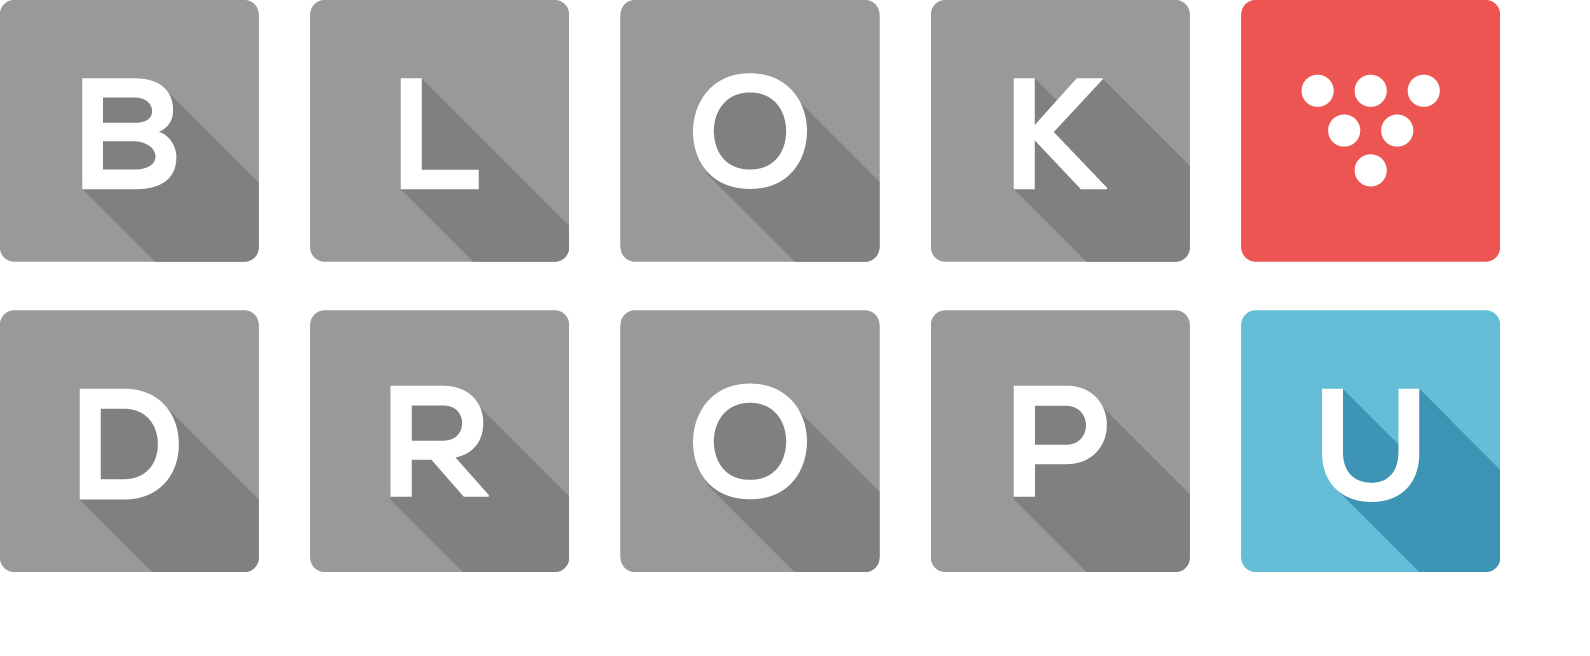 Review: BLOK DROP U (Wii U eShop download)